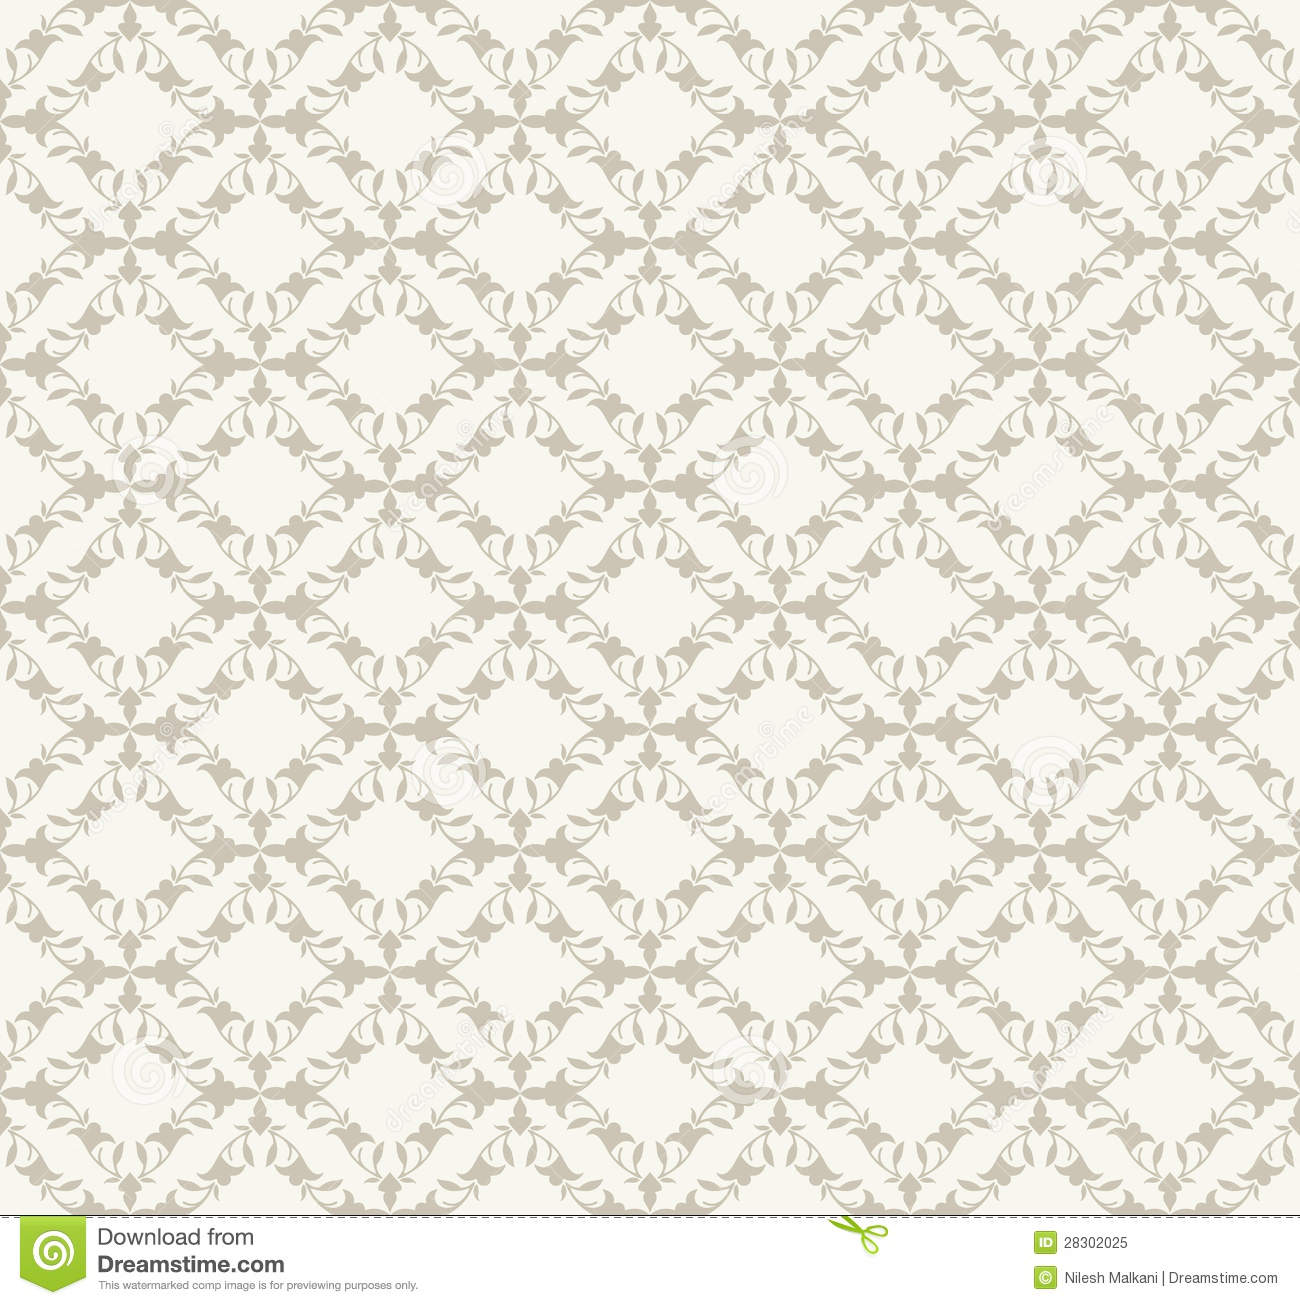 Fancy Wallpaper: Seamless Fancy Wallpaper And Background Royalty Free Stock